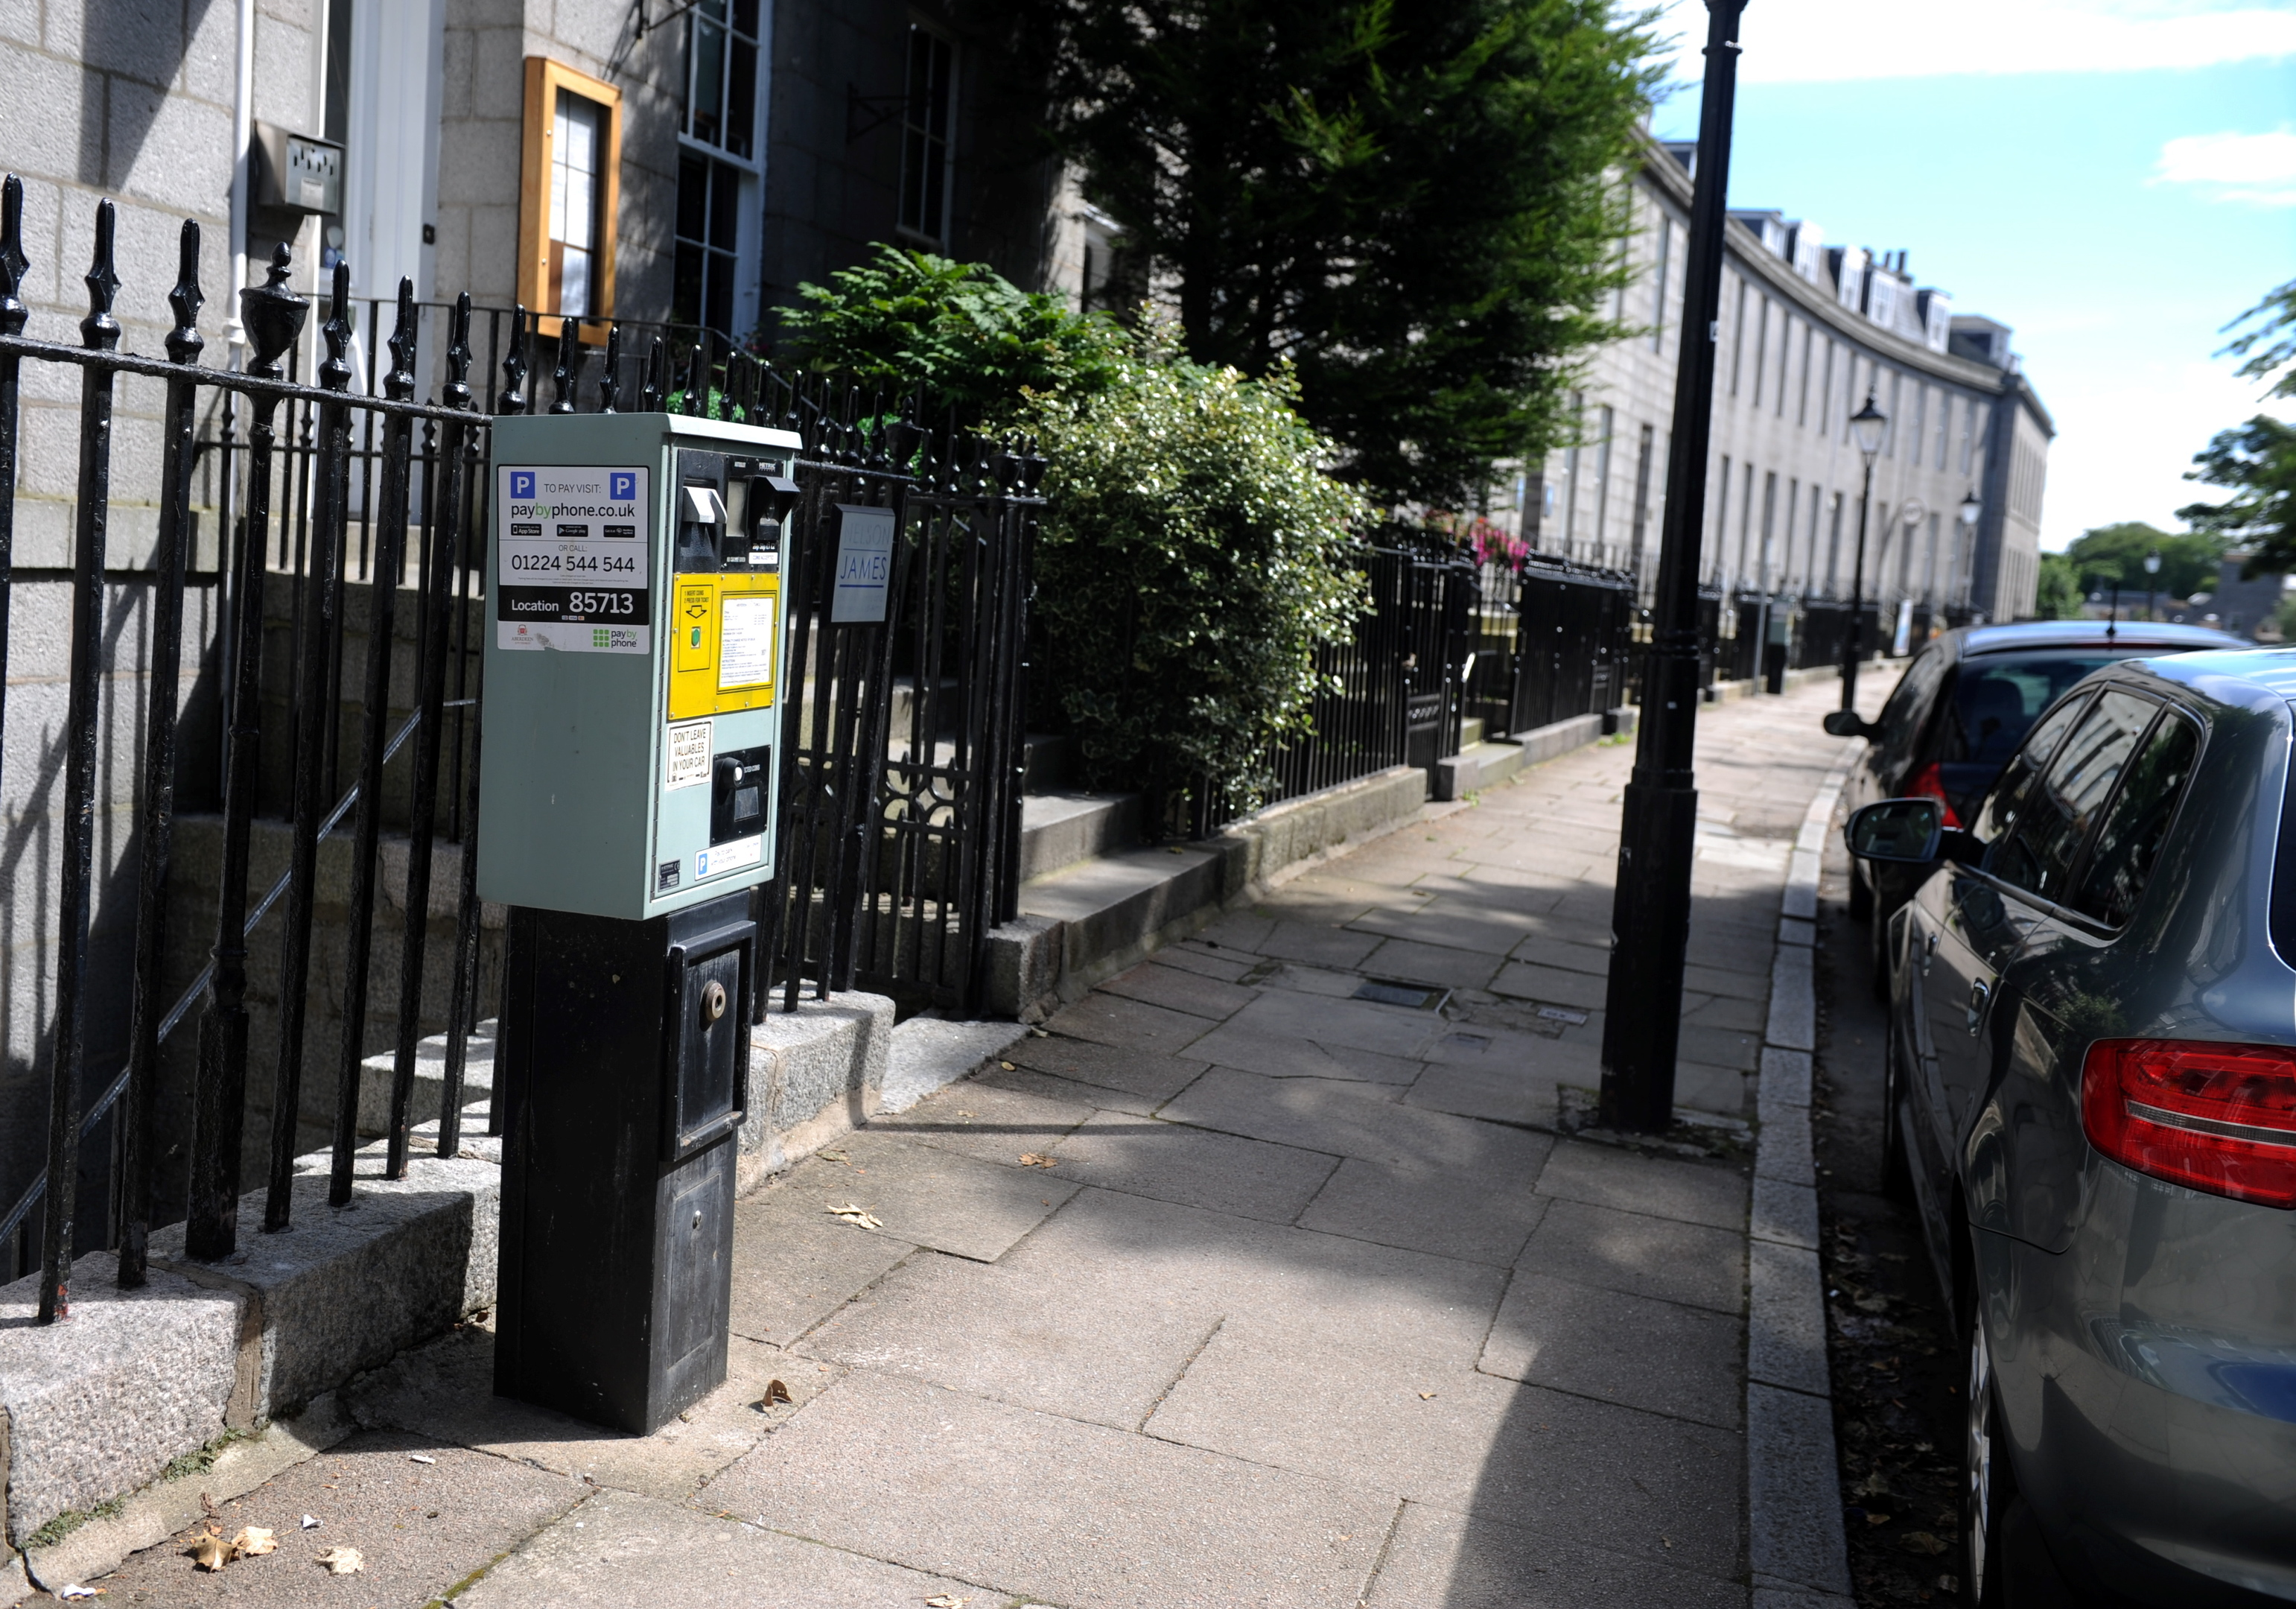 A parking ticket pay and display  machine on  Bon Accord Crescent.